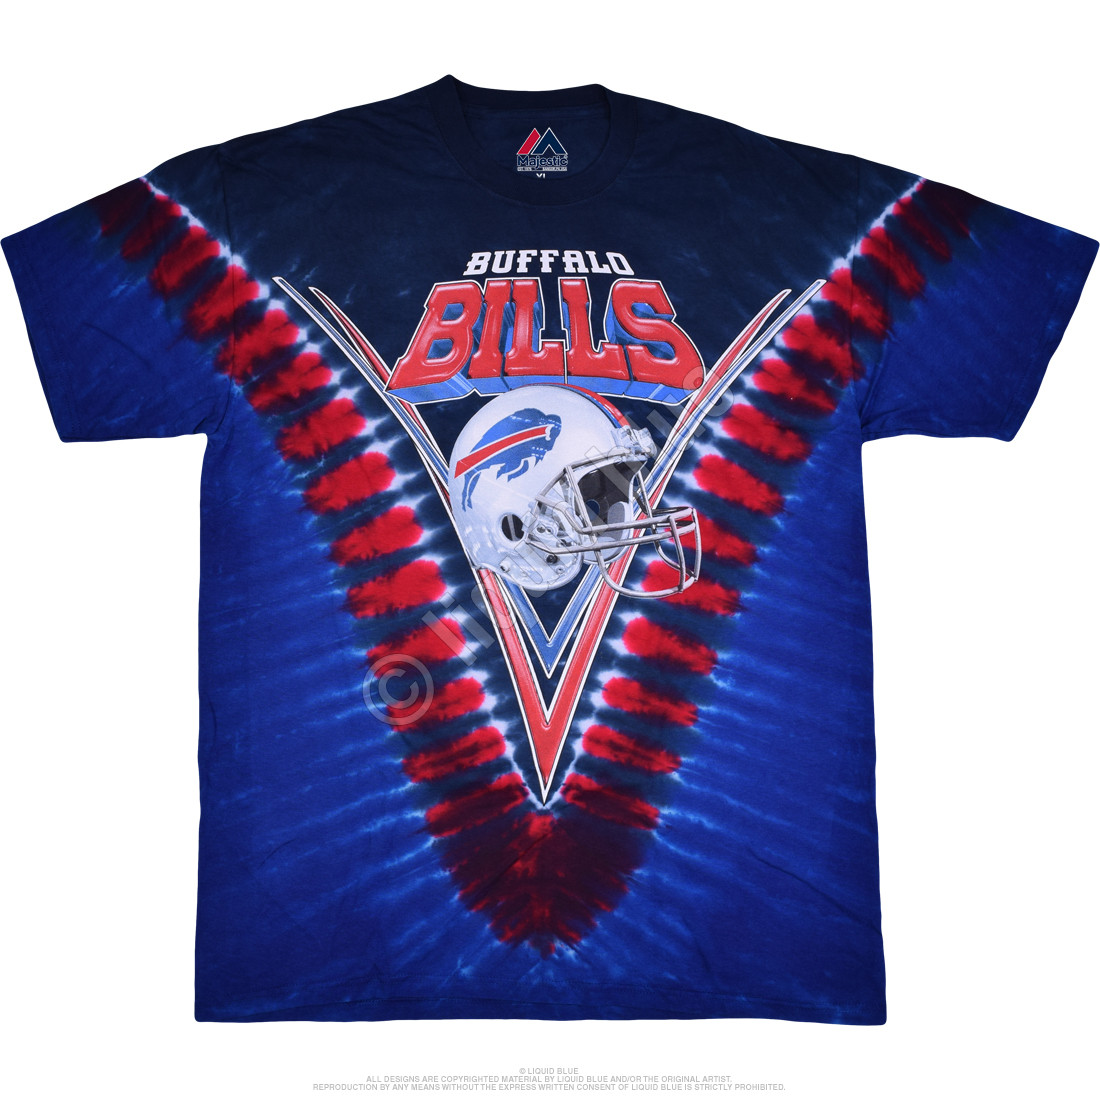 Buffalo Bills V Tie-Dye T-Shirt